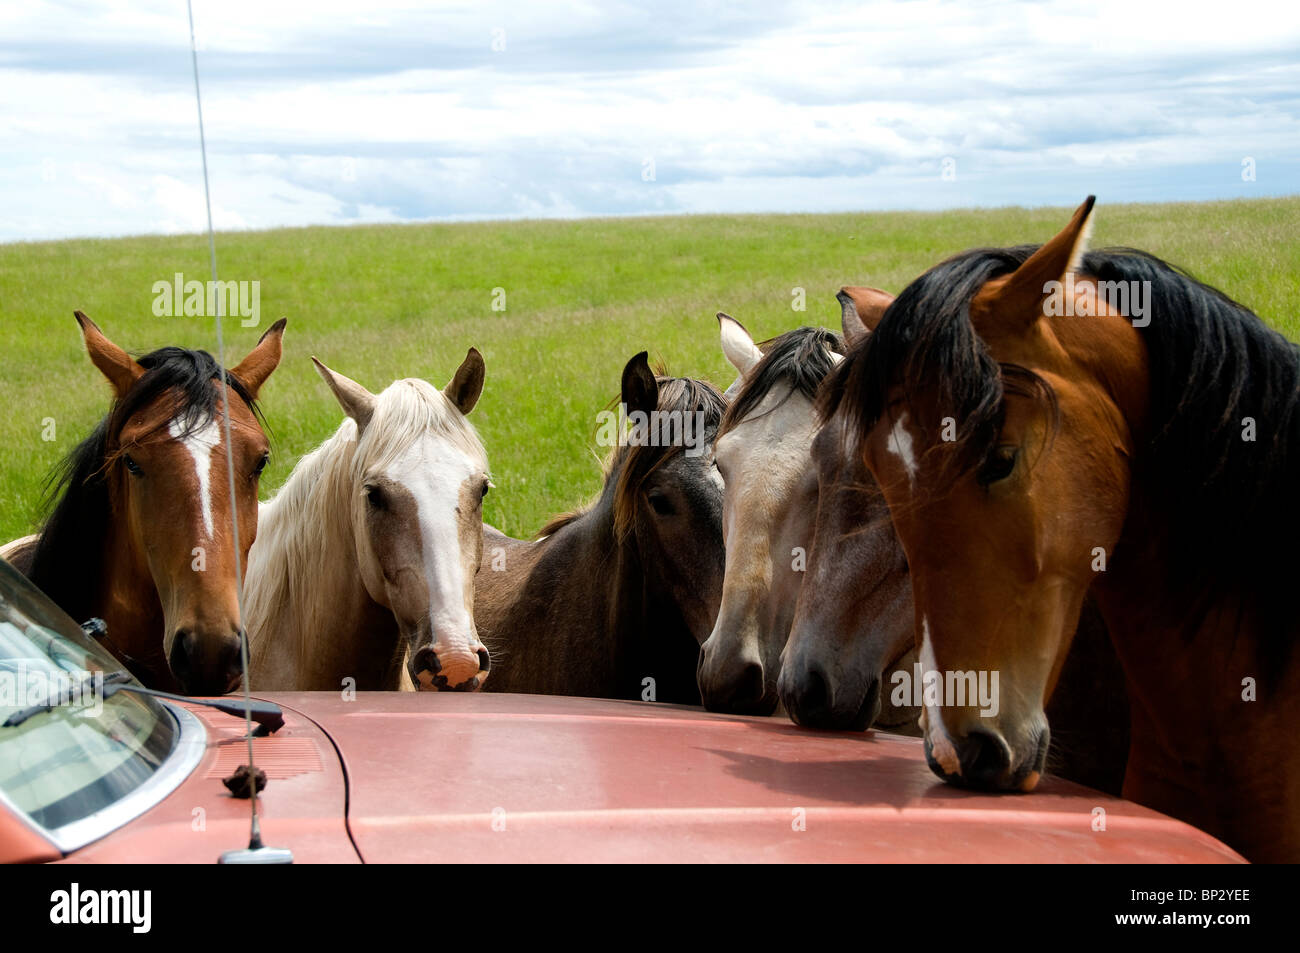 Lusitano mares smelling paint on hood of car. They will scrape and lick it. Stock Photo